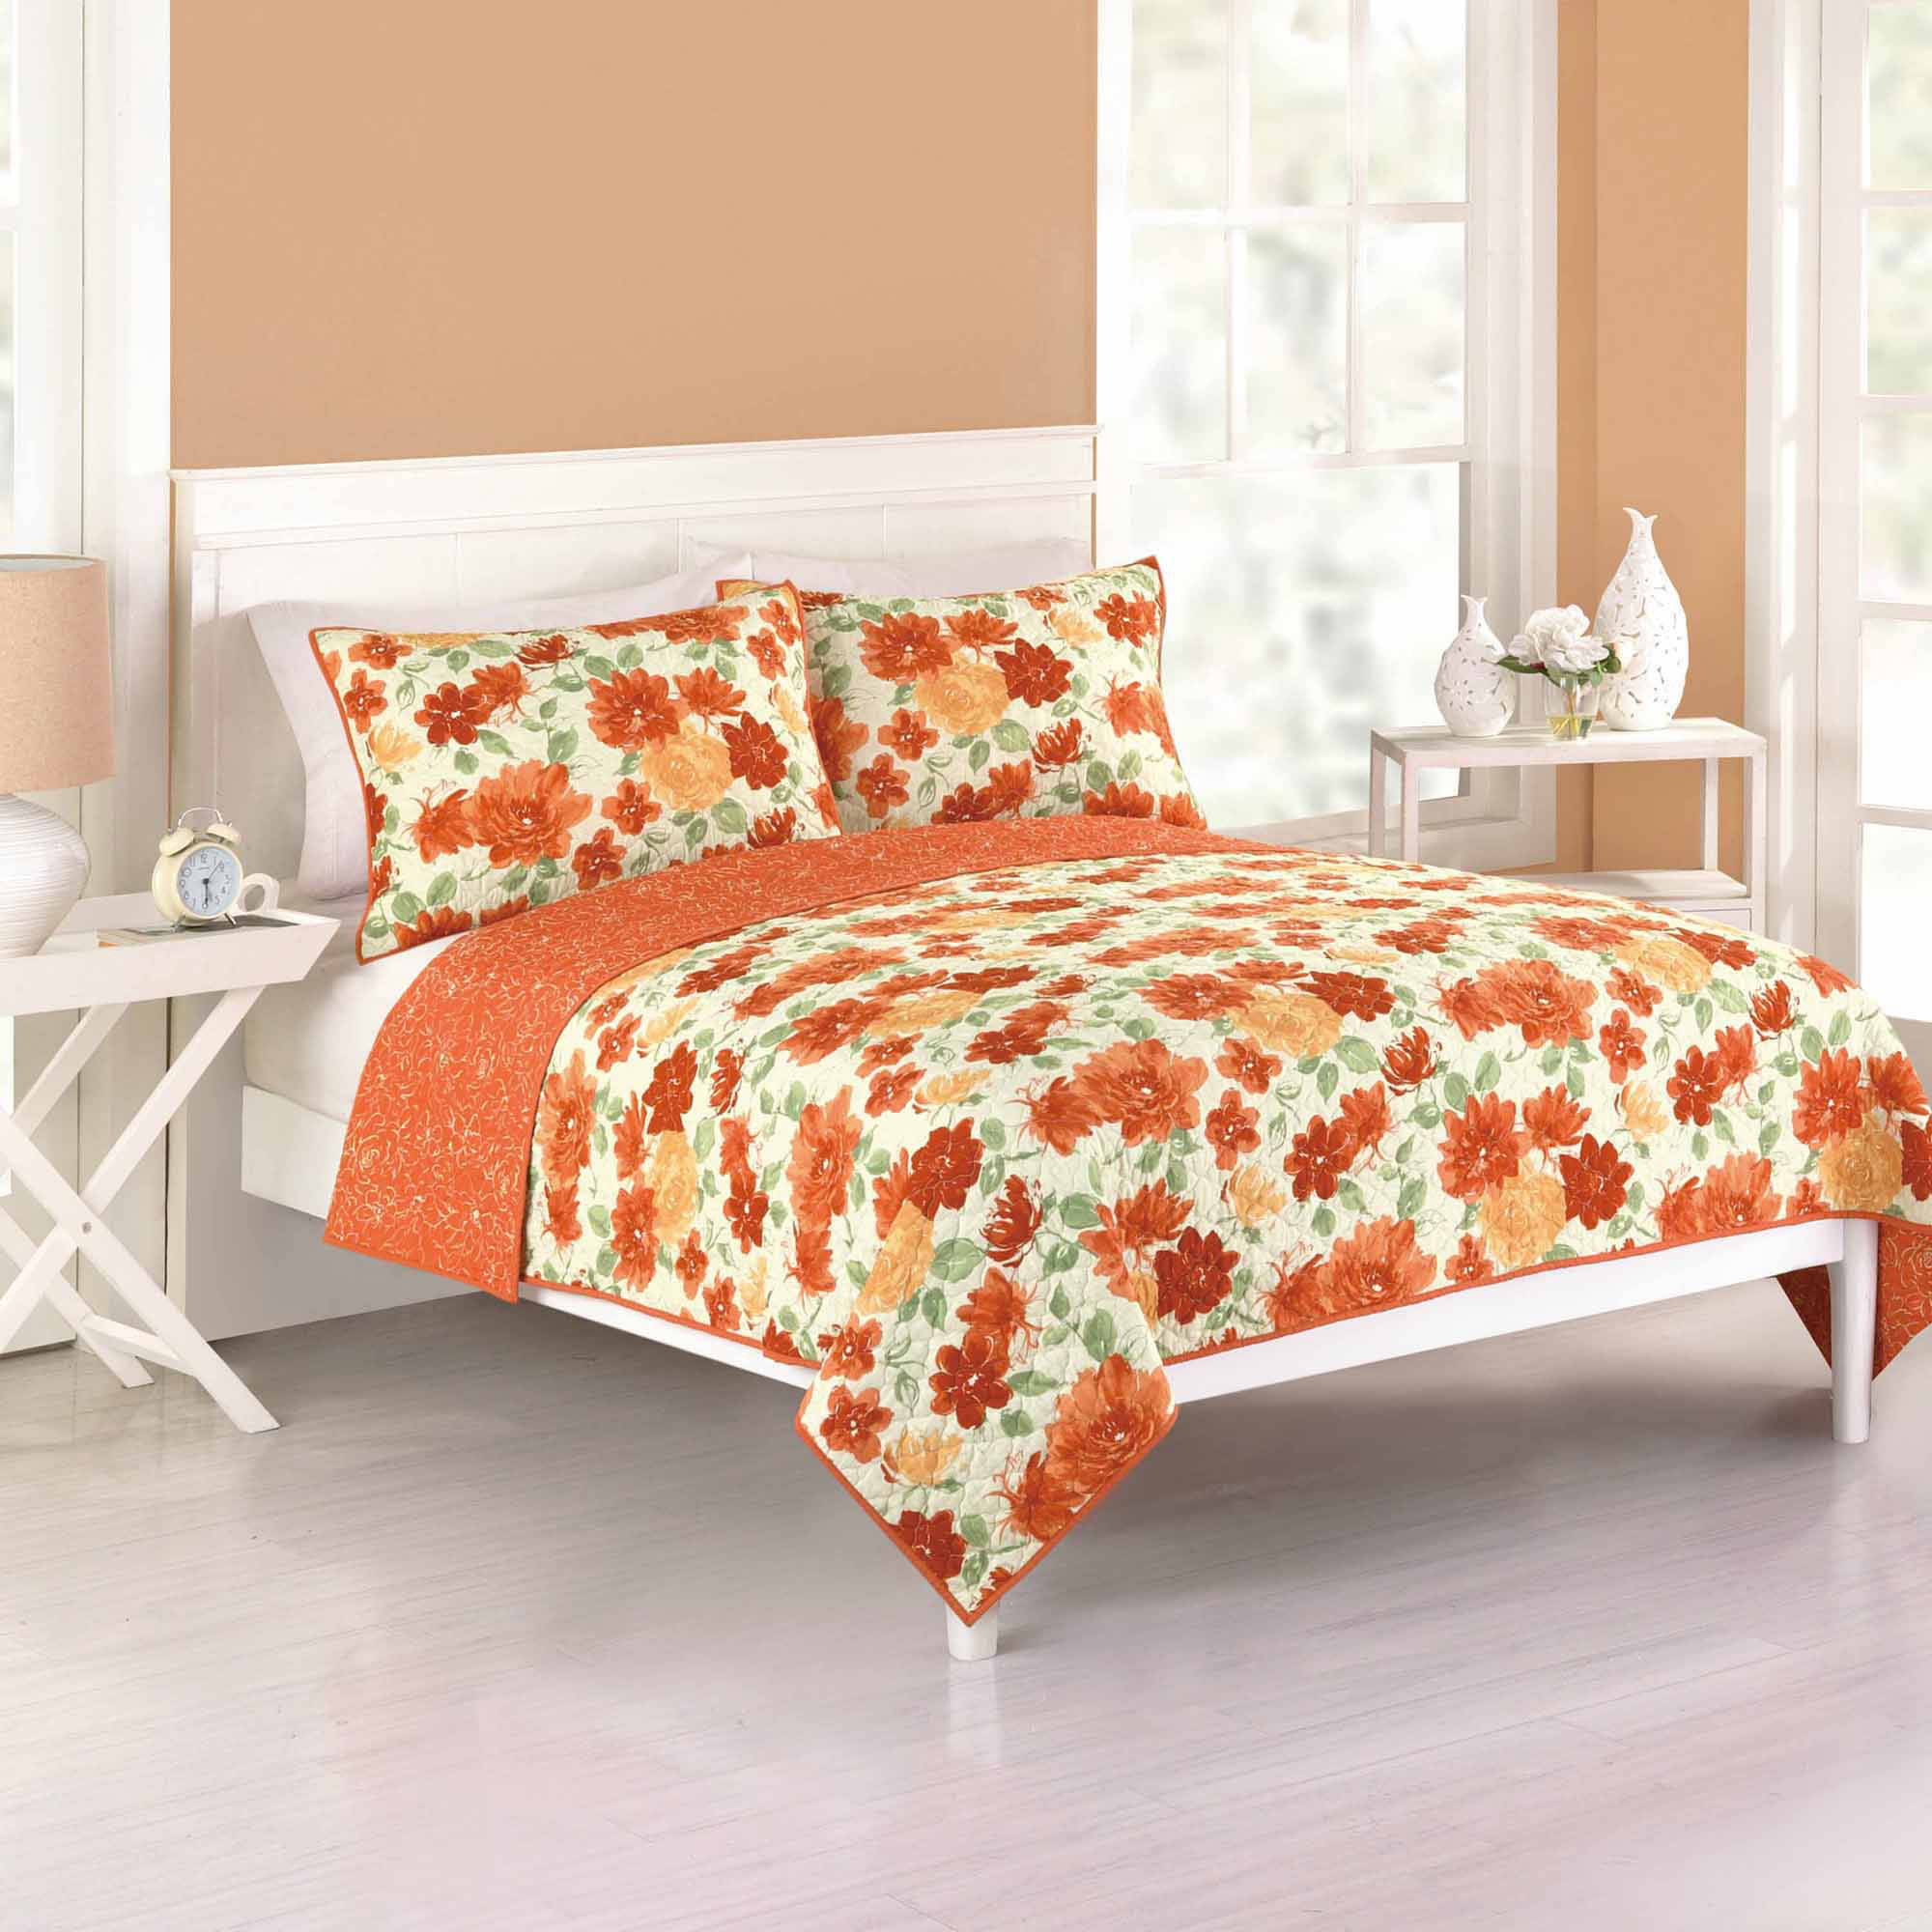 Better Homes and Gardens Watercolor Floral Reversible Bedding Quilt